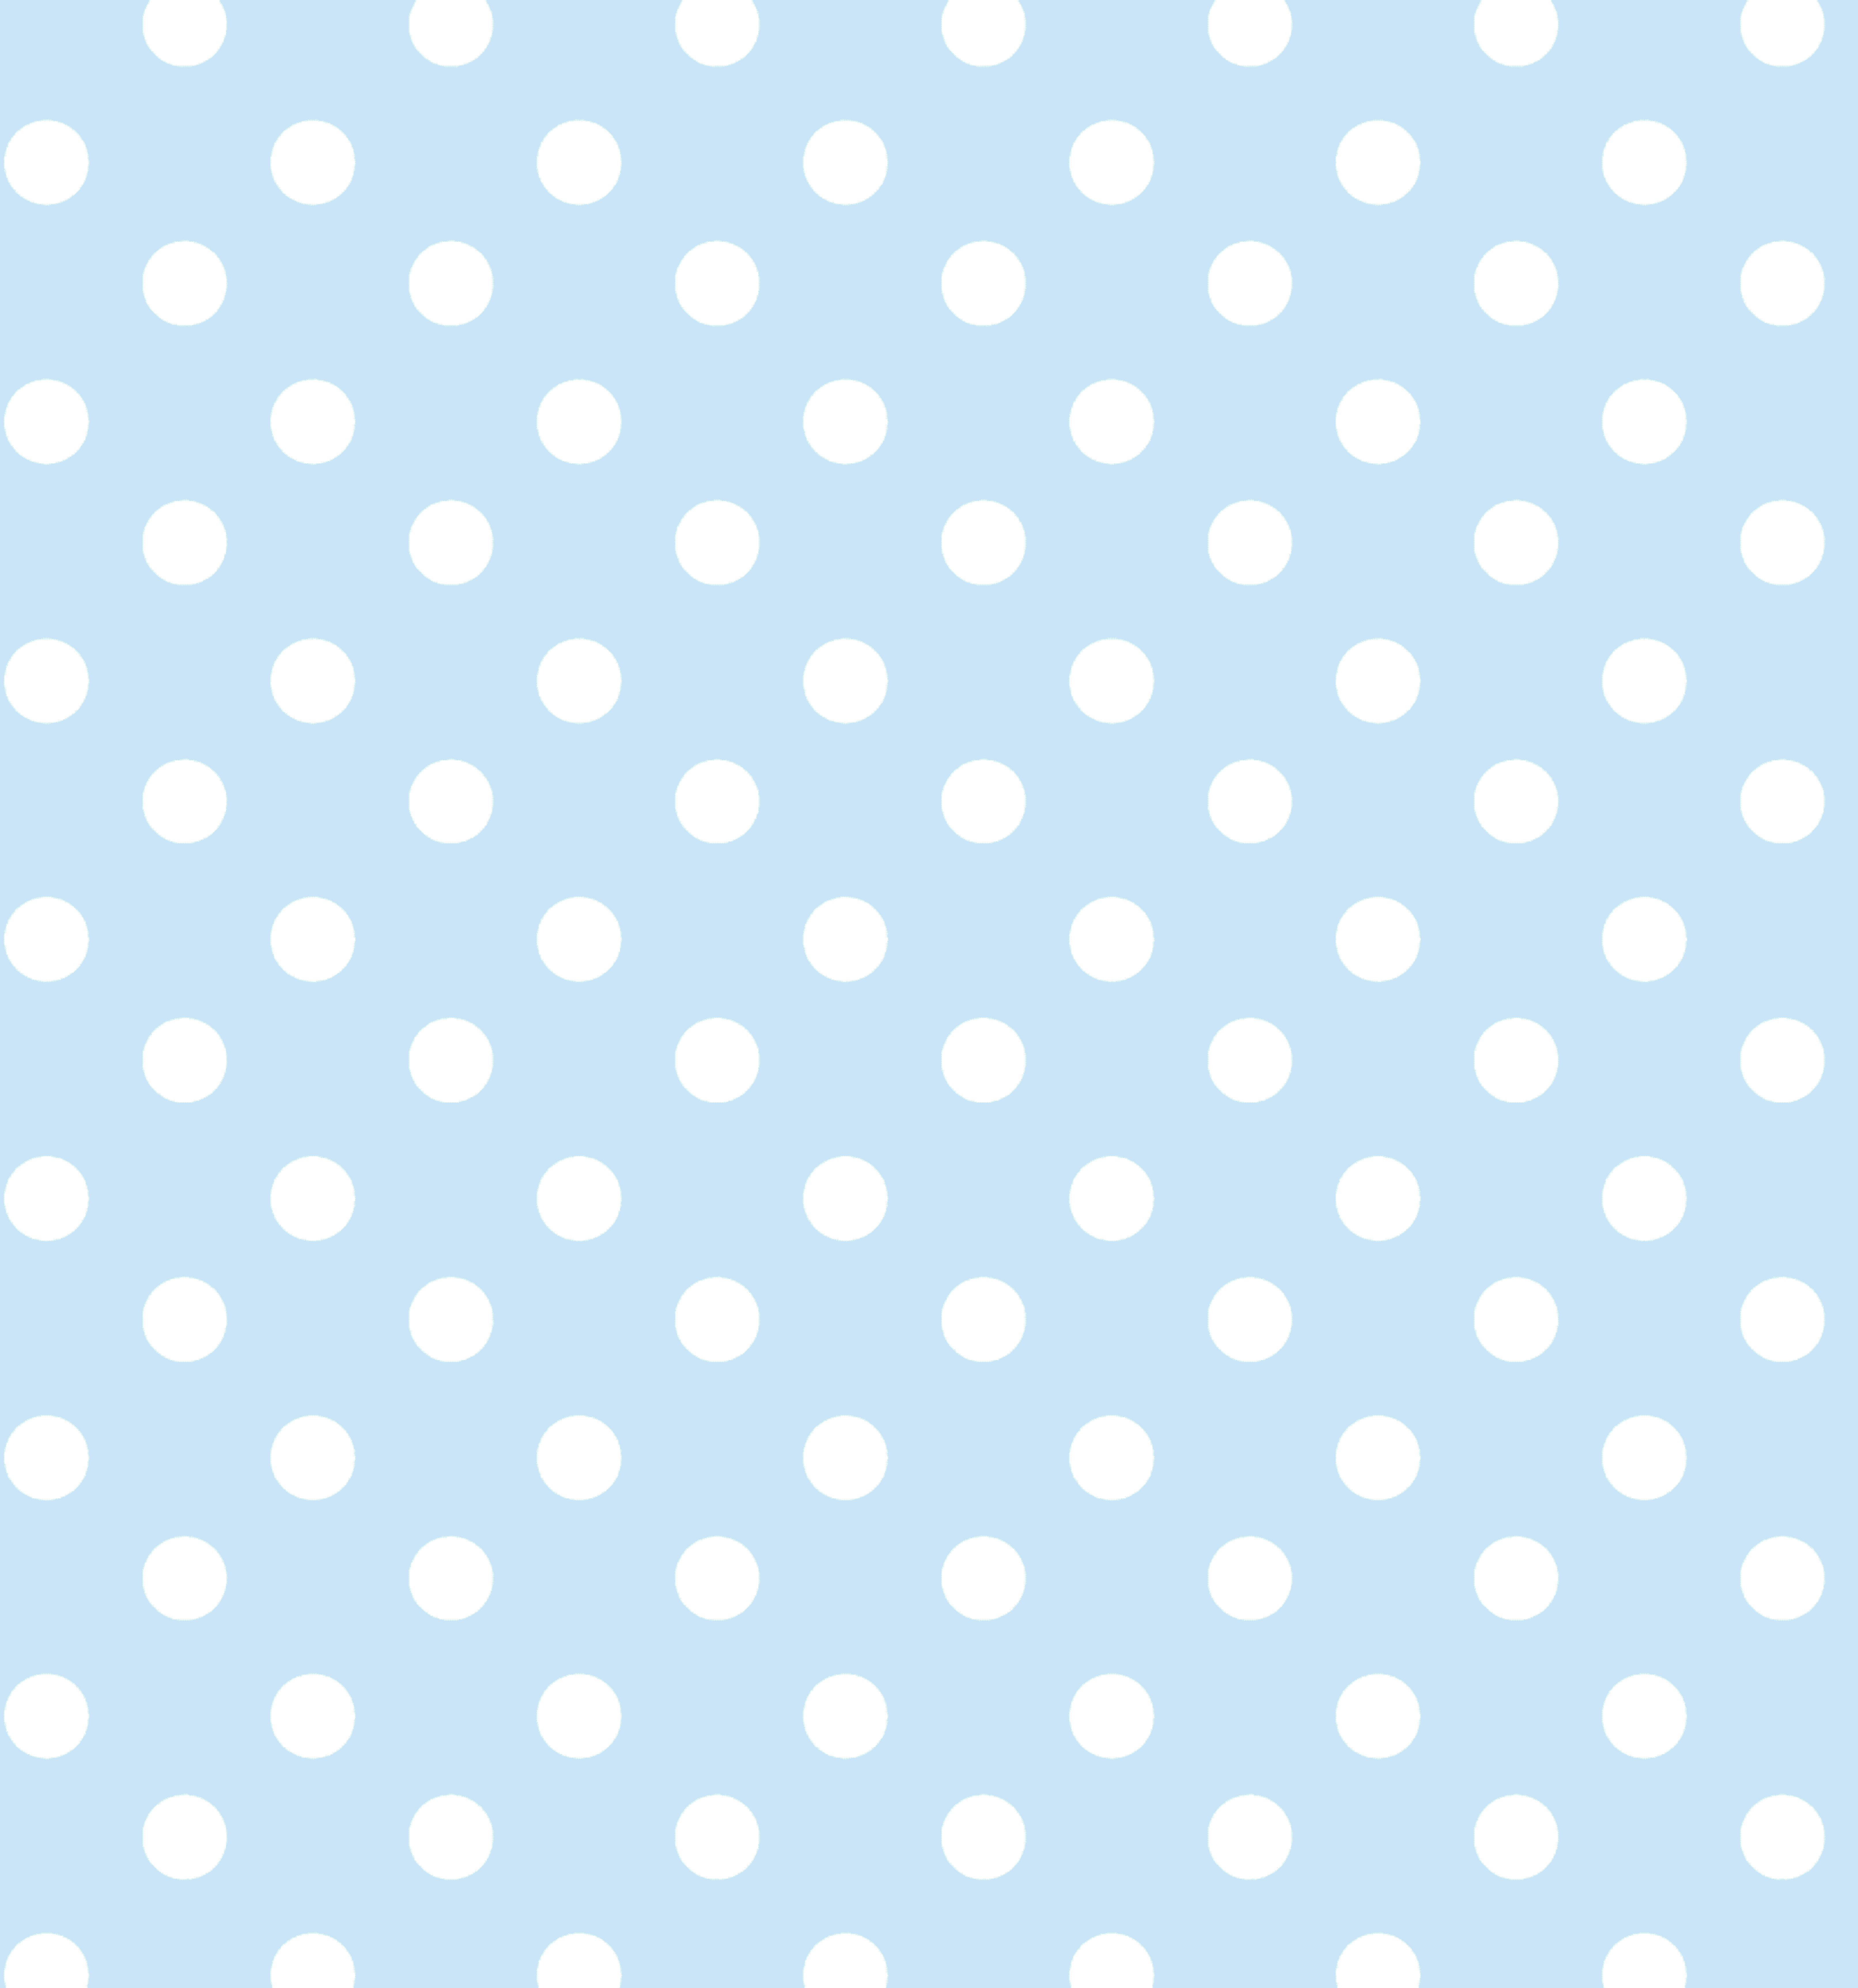 RTC Fabric 100% Cotton Print Flannel fabric, Quilting fabric, Apparel fabric, 43'', 150GSM, Cut By The Yard